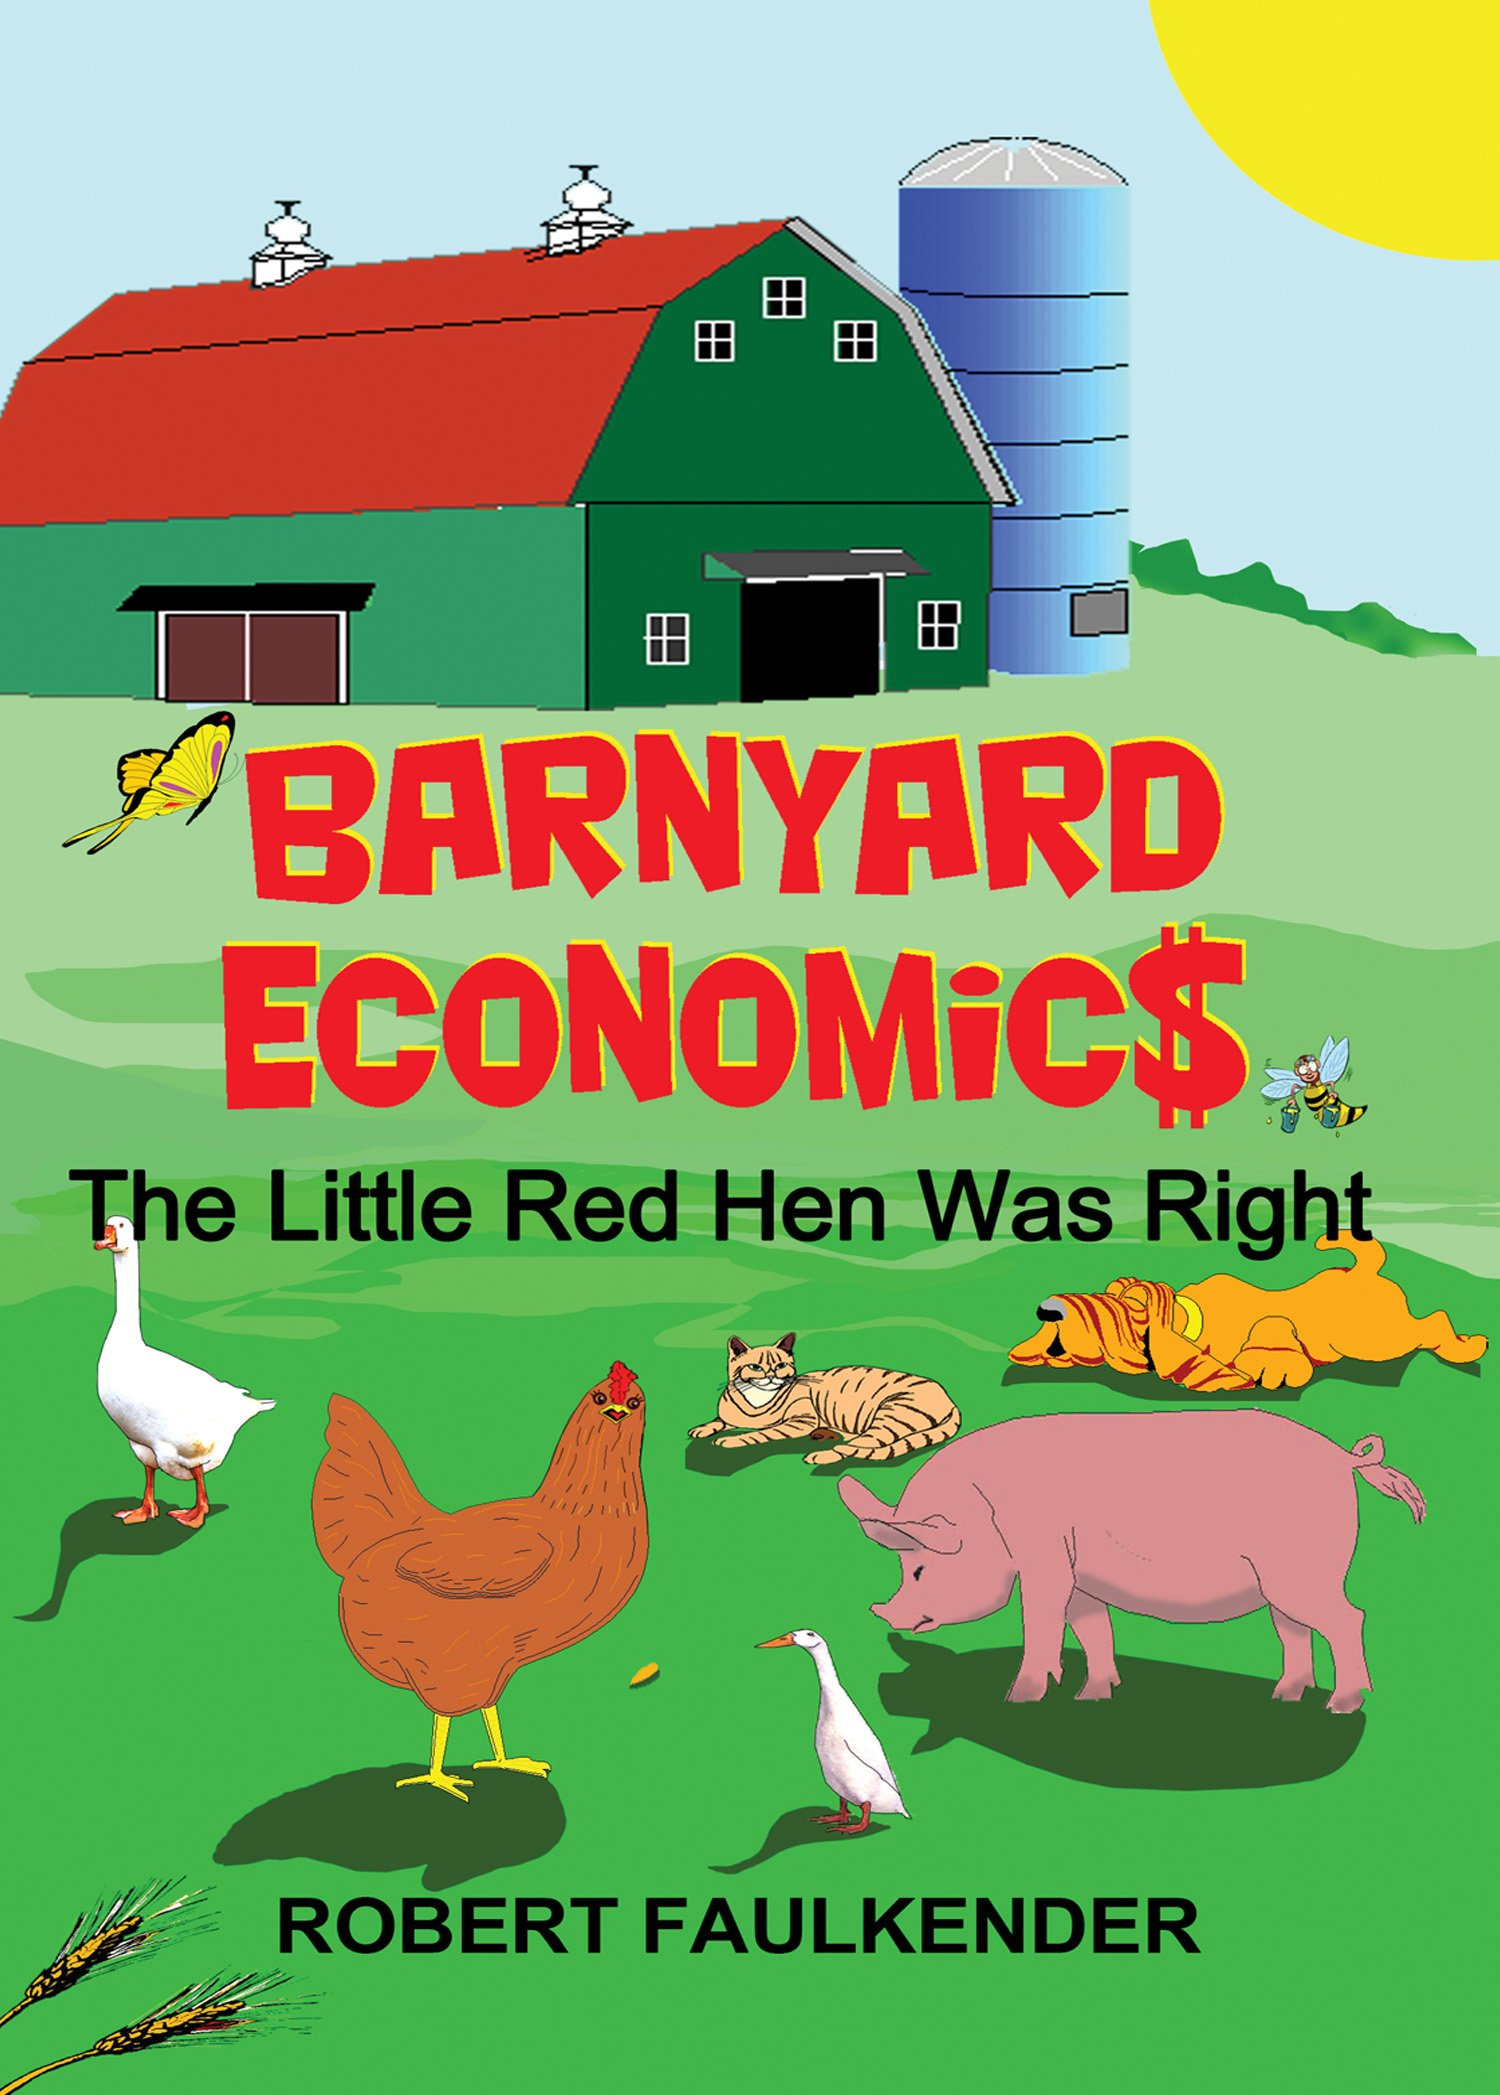 Barnyard Economics: The Little Red Hen Was Right